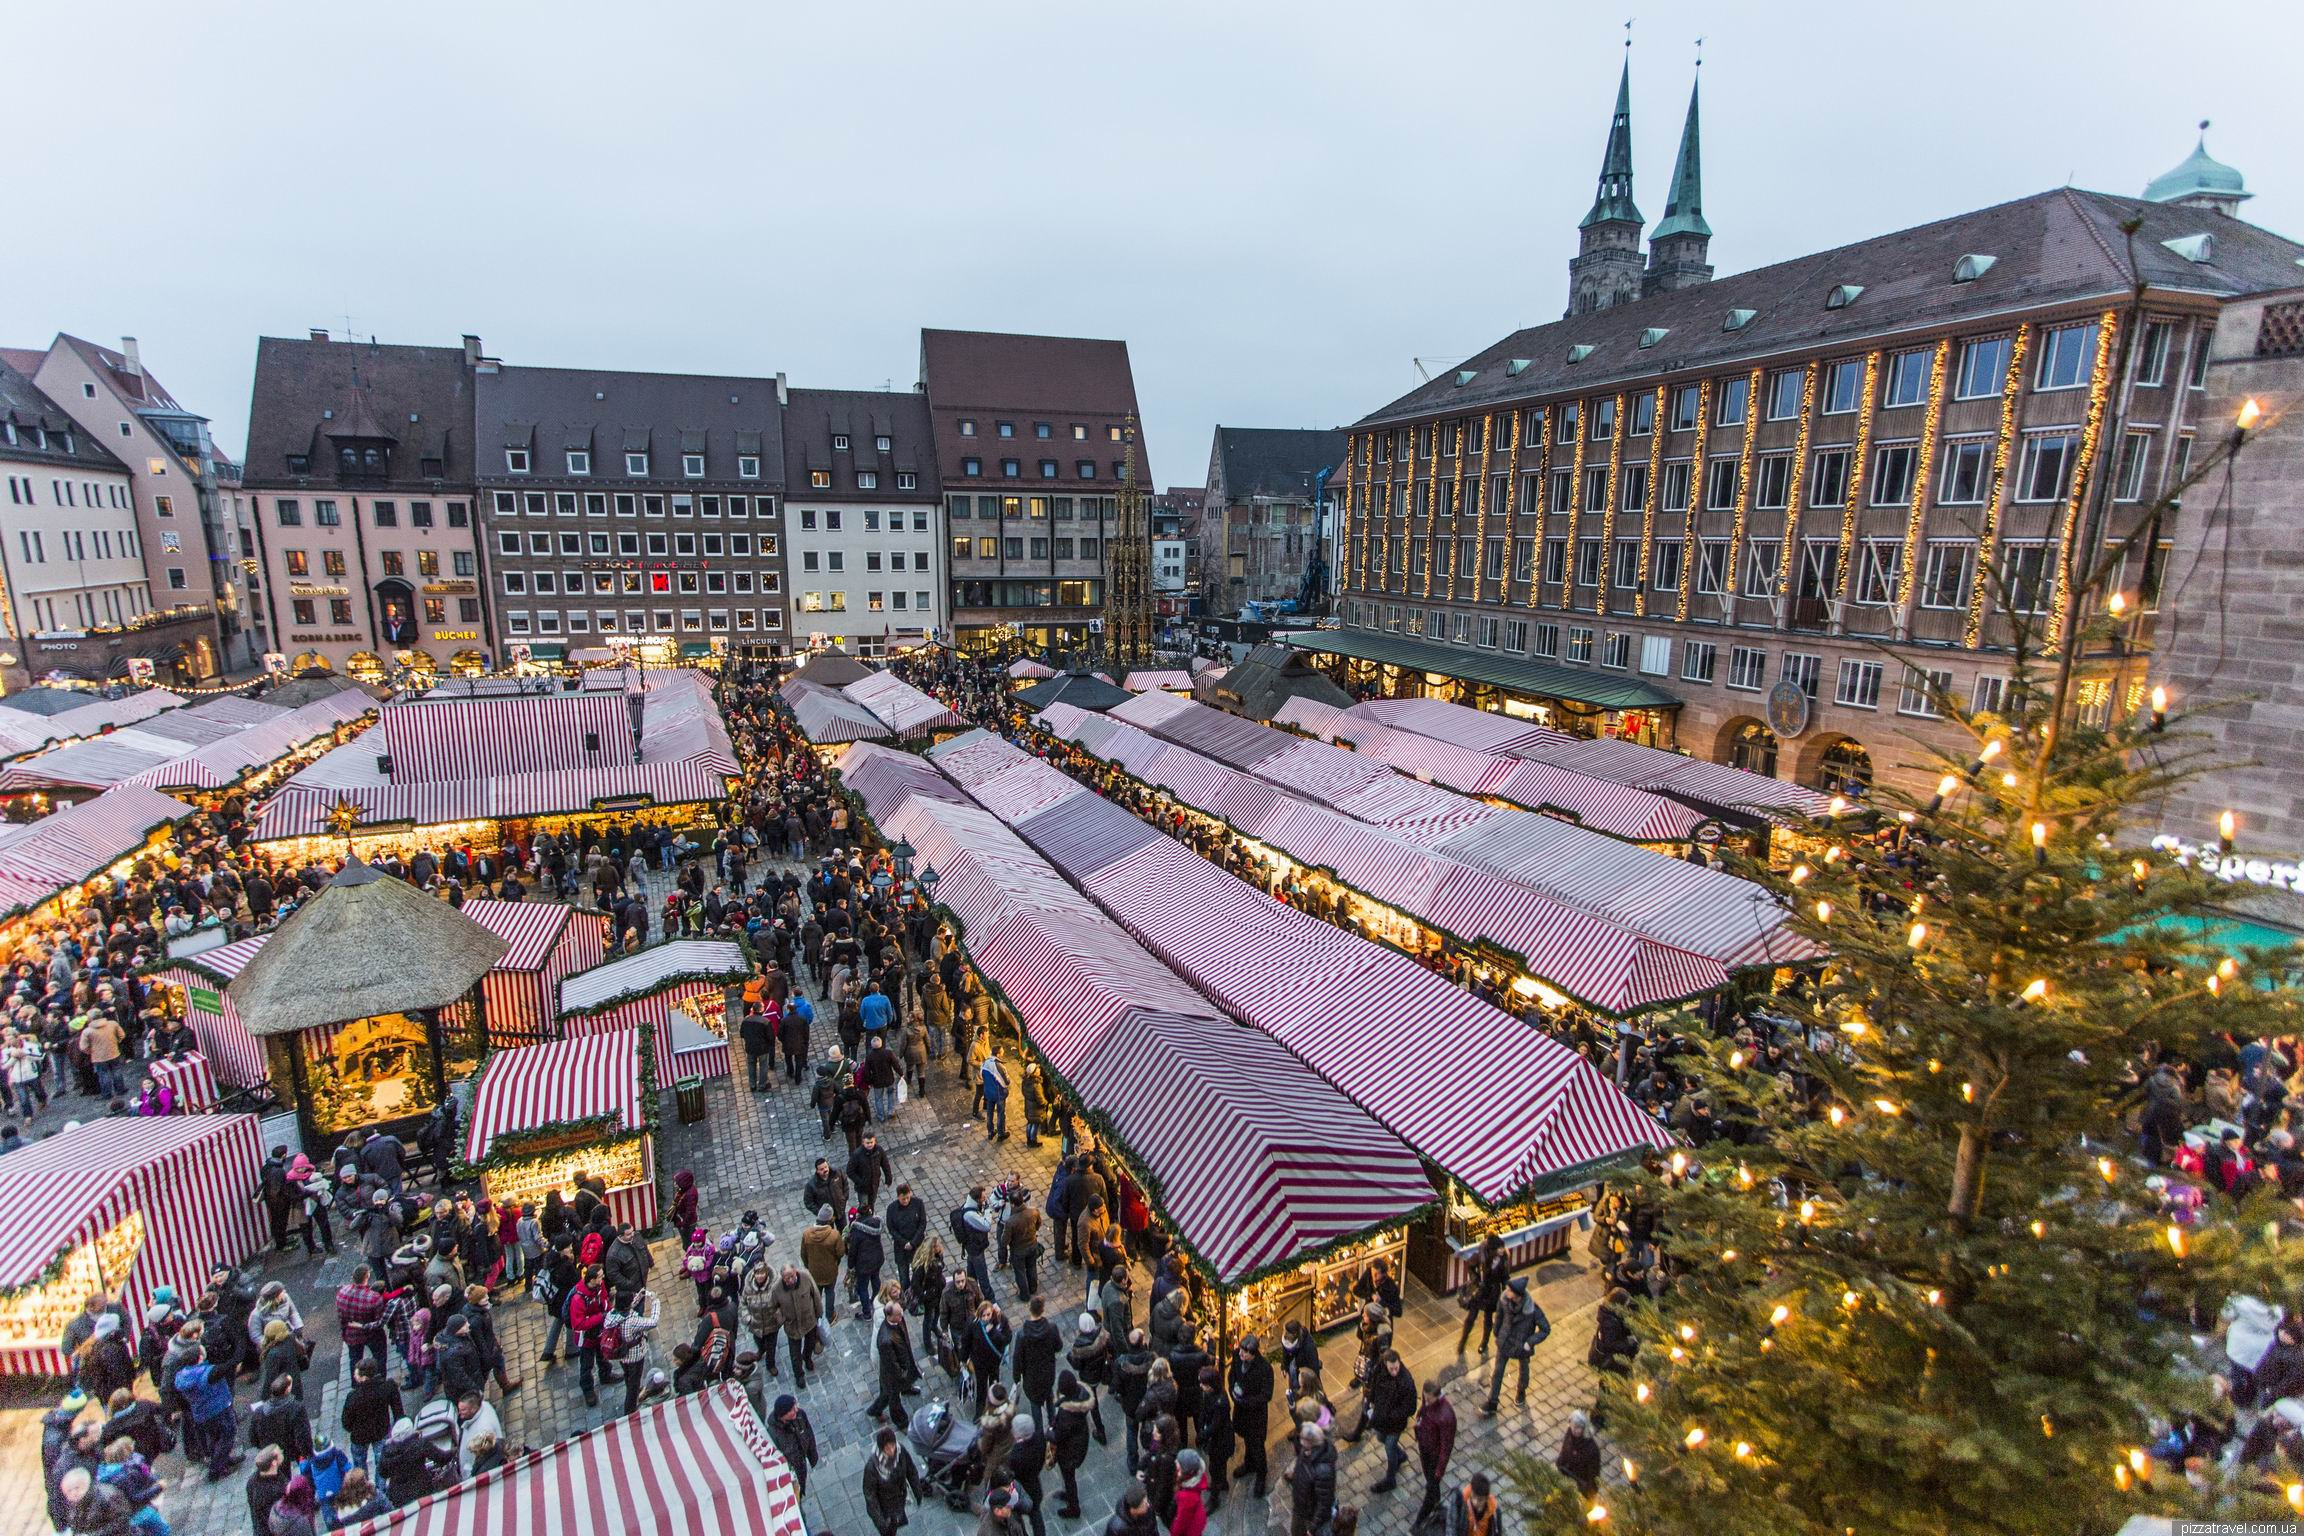 Christmas market in Nuremberg - Germany - Blog about interesting places